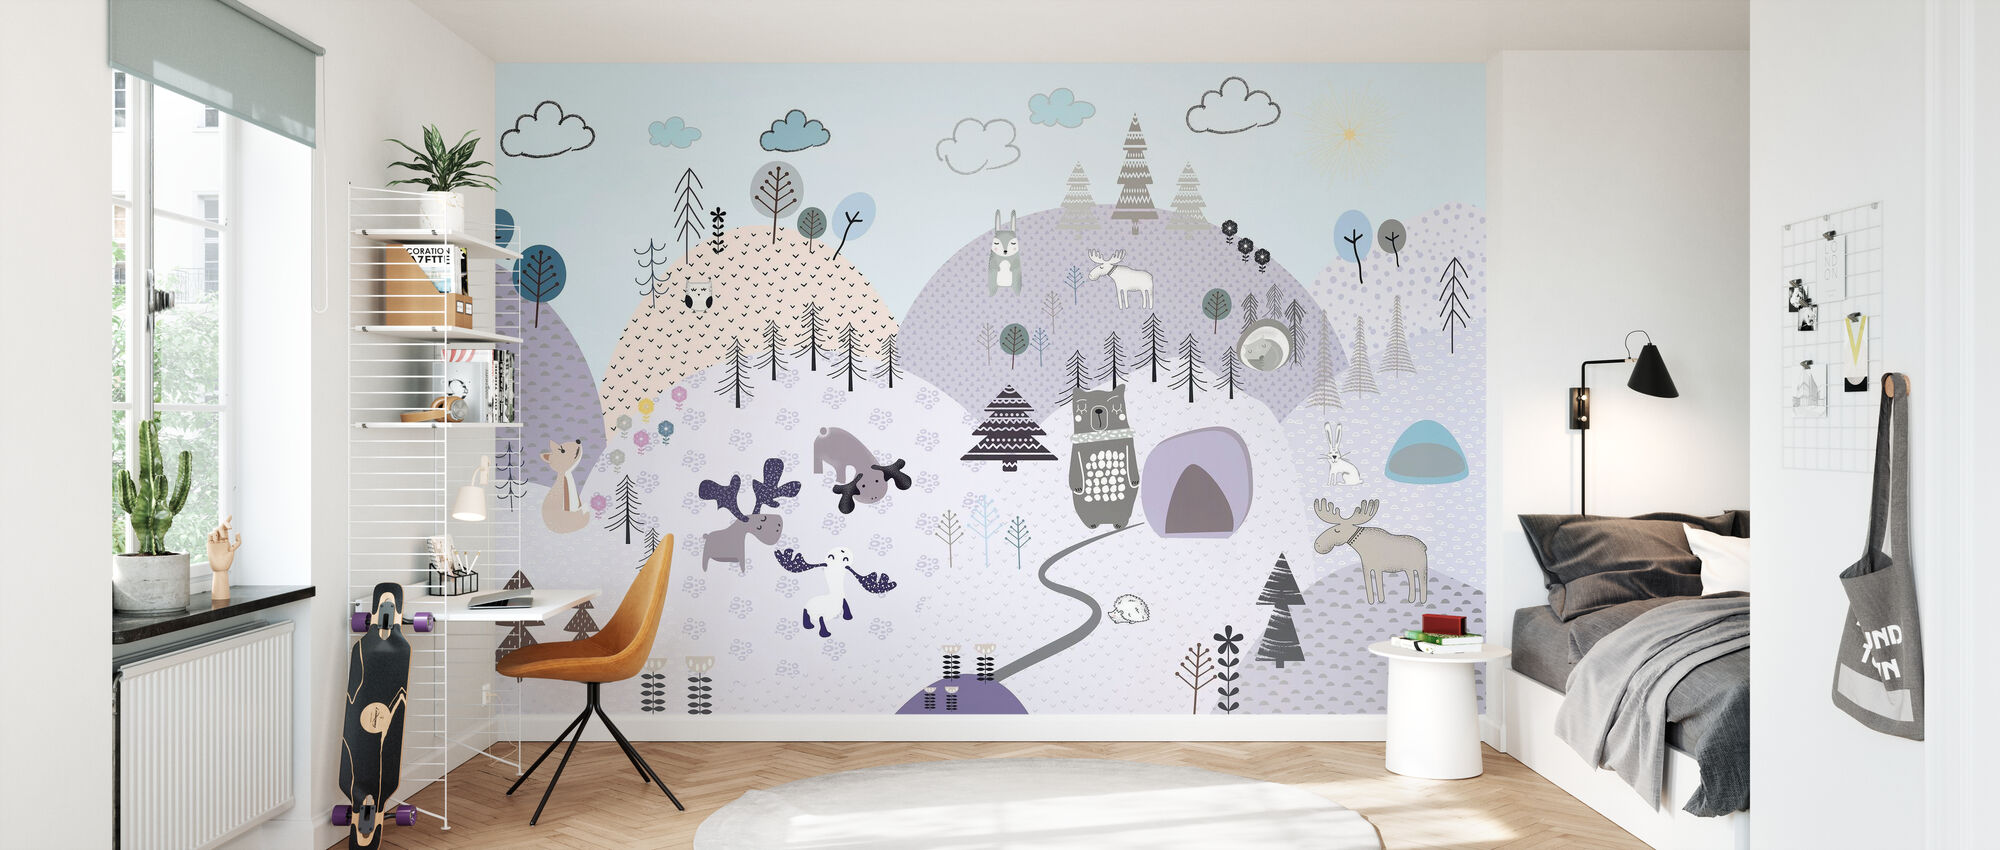 Animal Community VI - Wallpaper - Kids Room